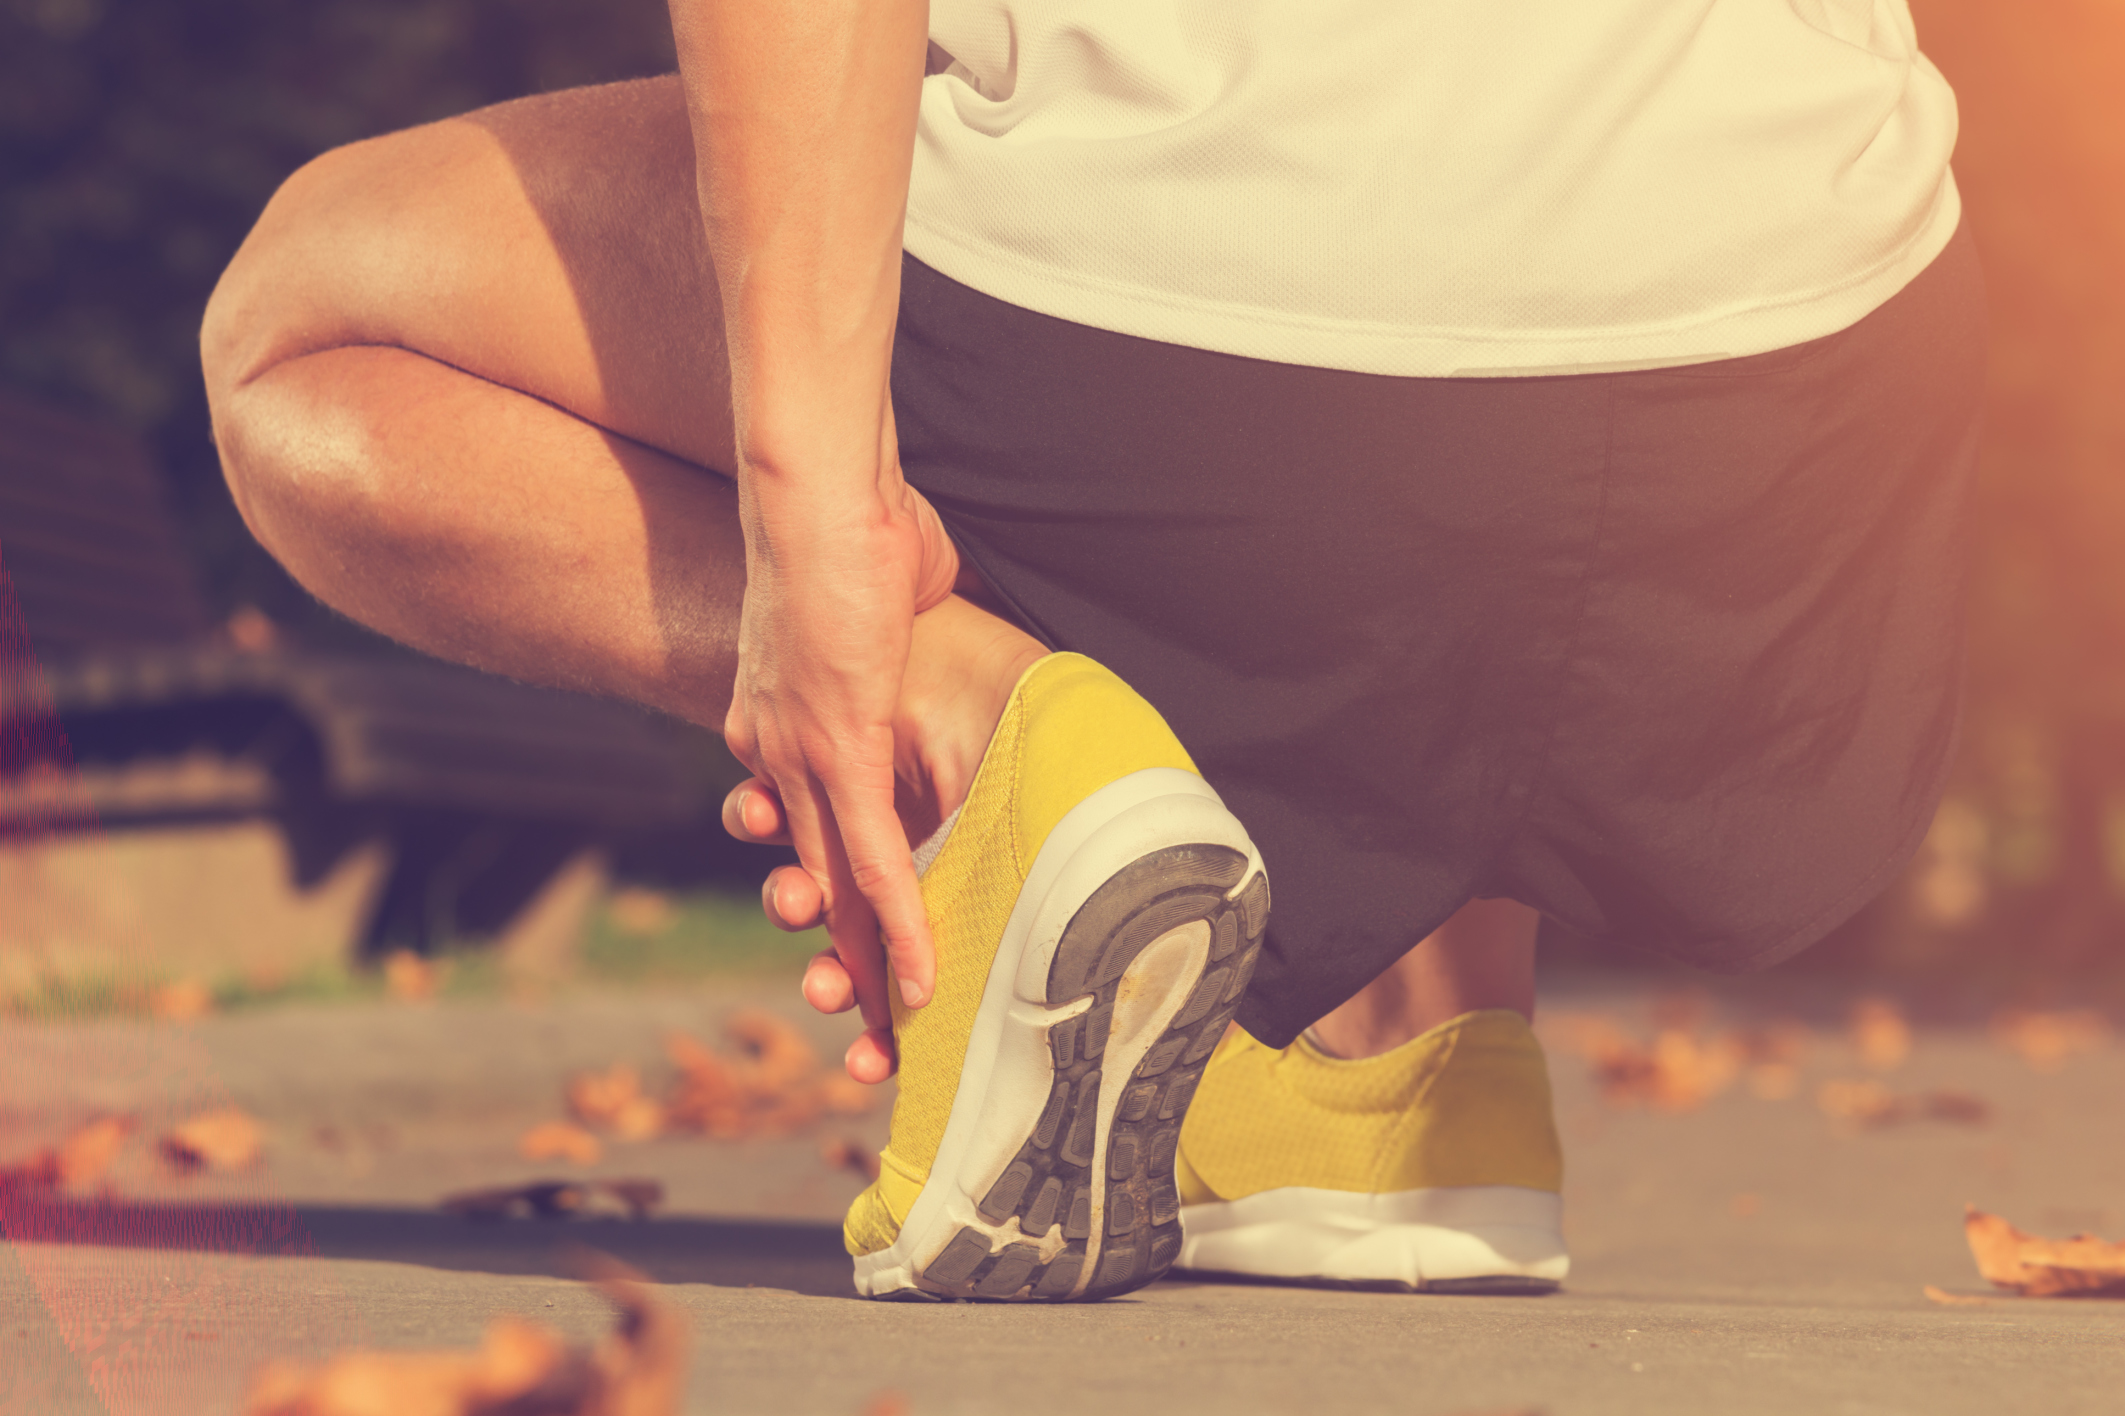 to Prevent Stress Fractures of the Foot